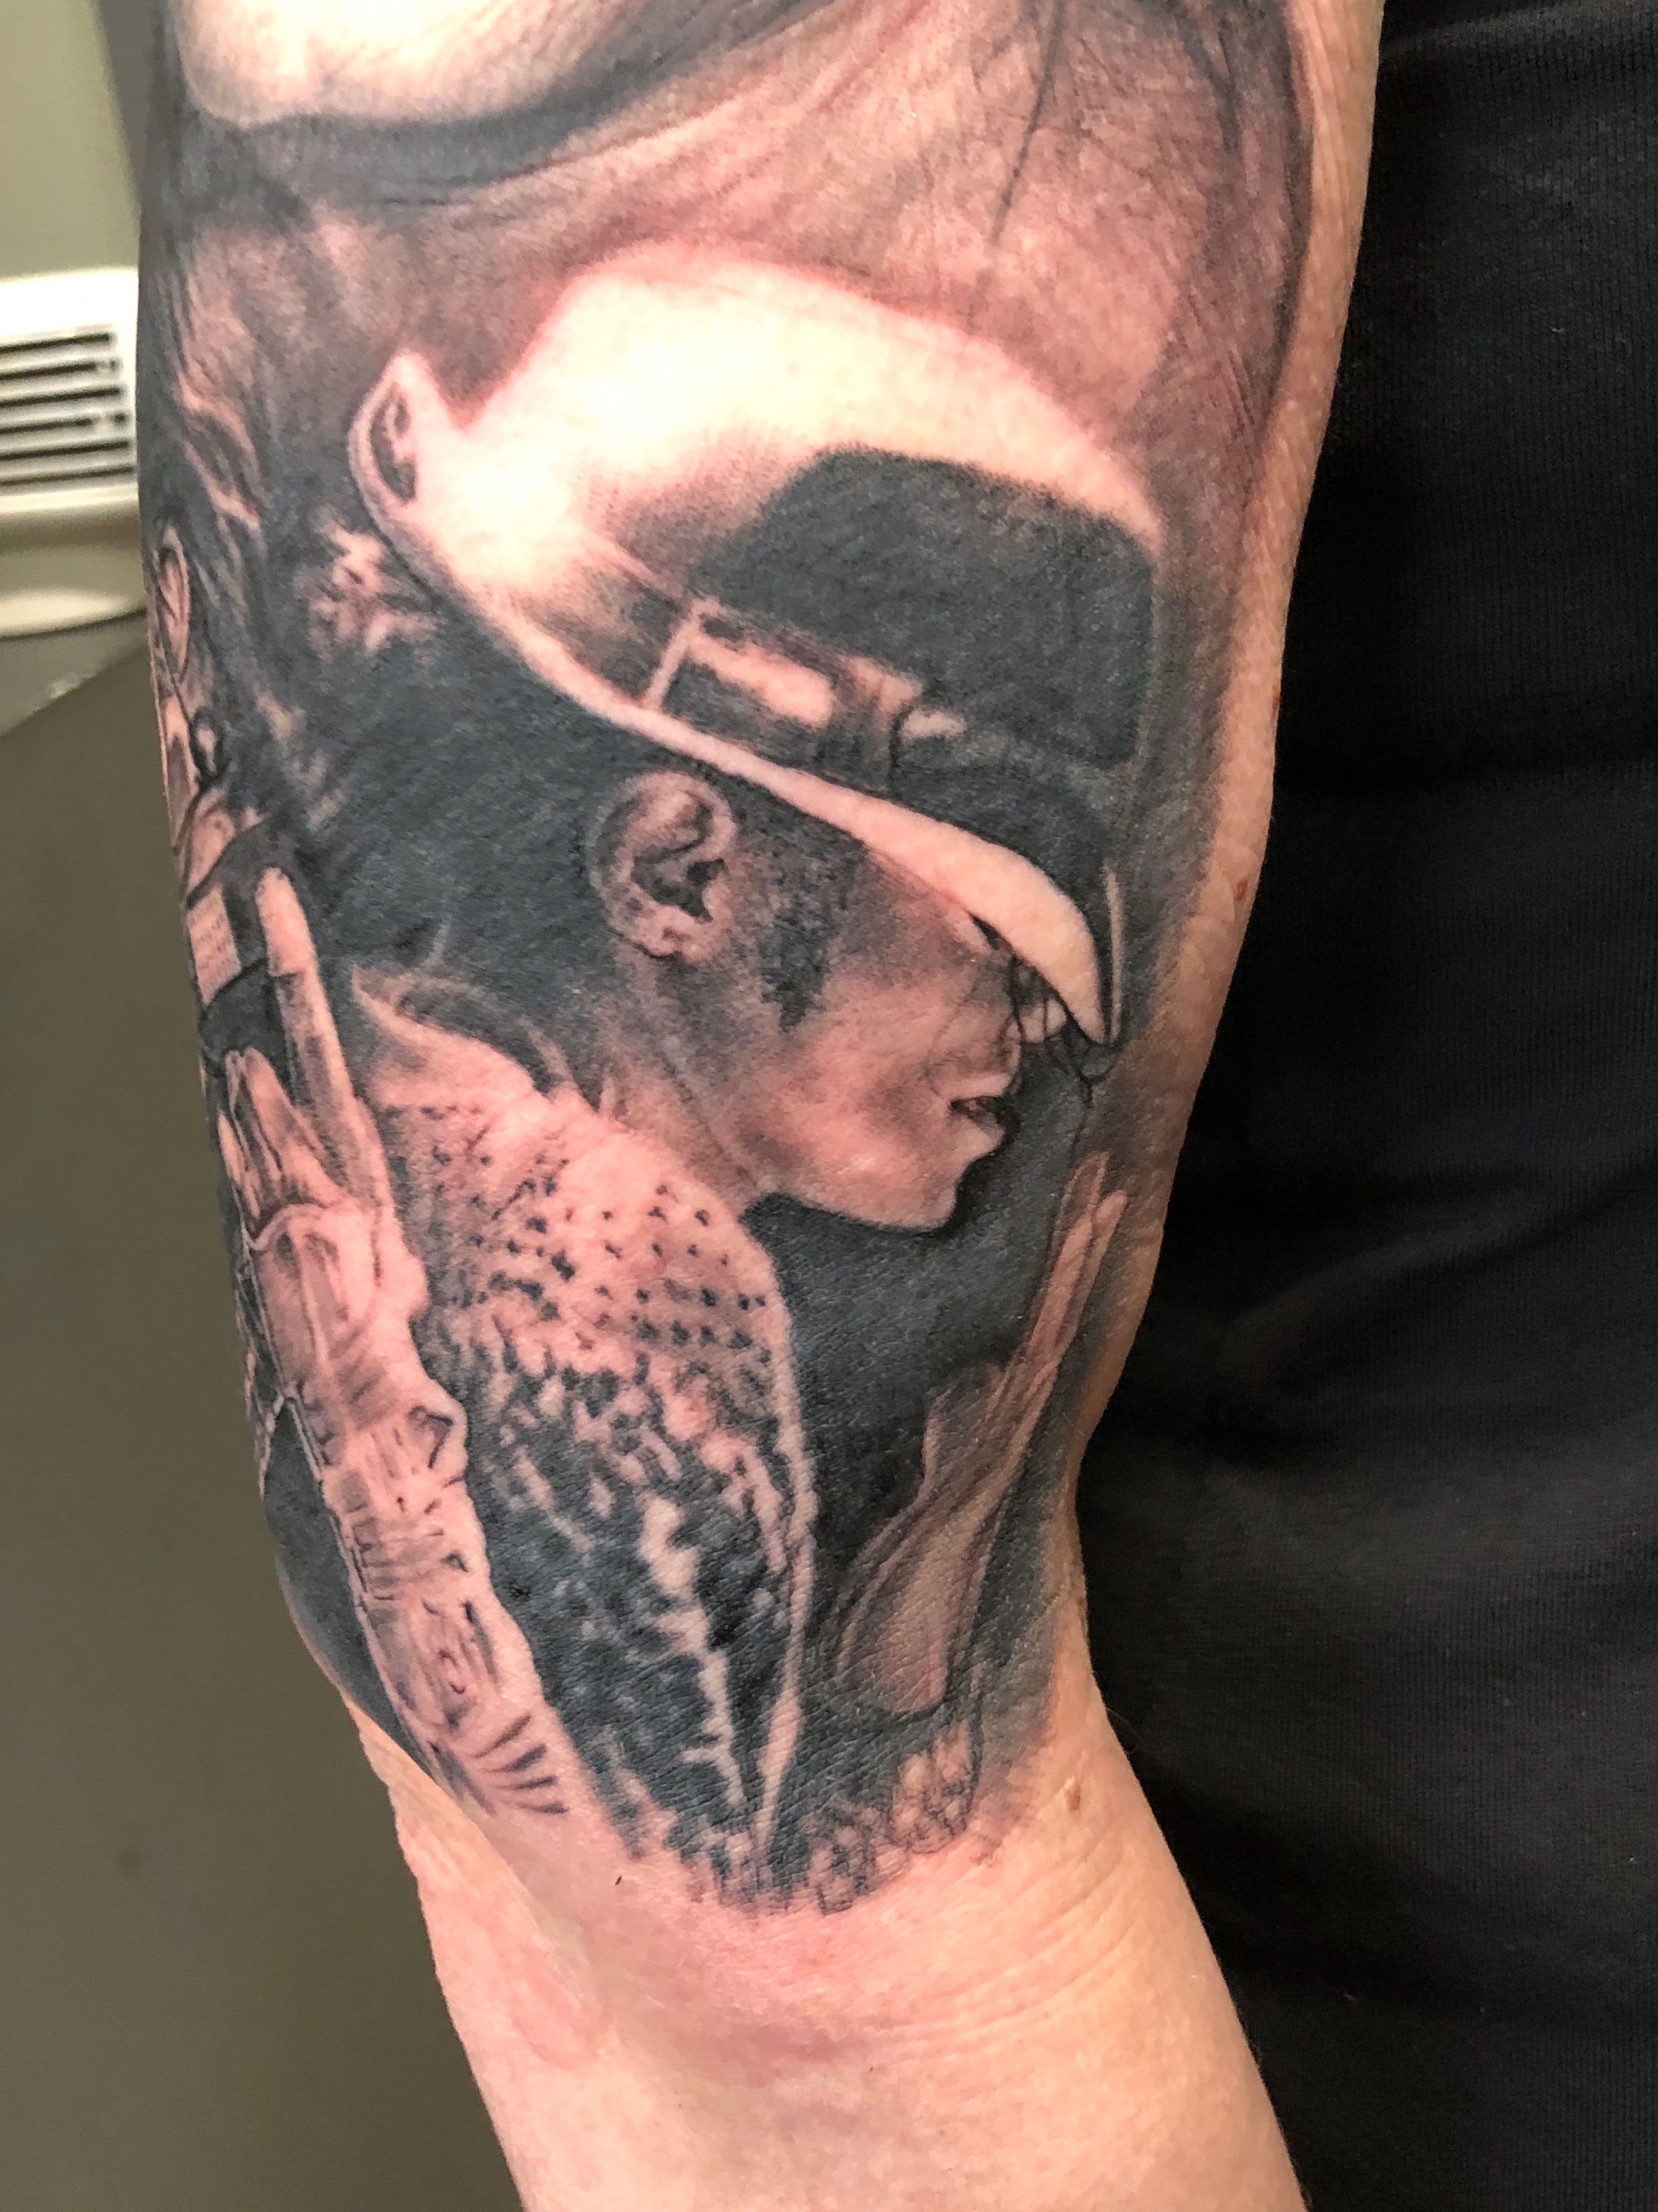 Retrato realista Santander. Black and grey tattoo. Michael Jackson. Verger Tattoo. JR Verger